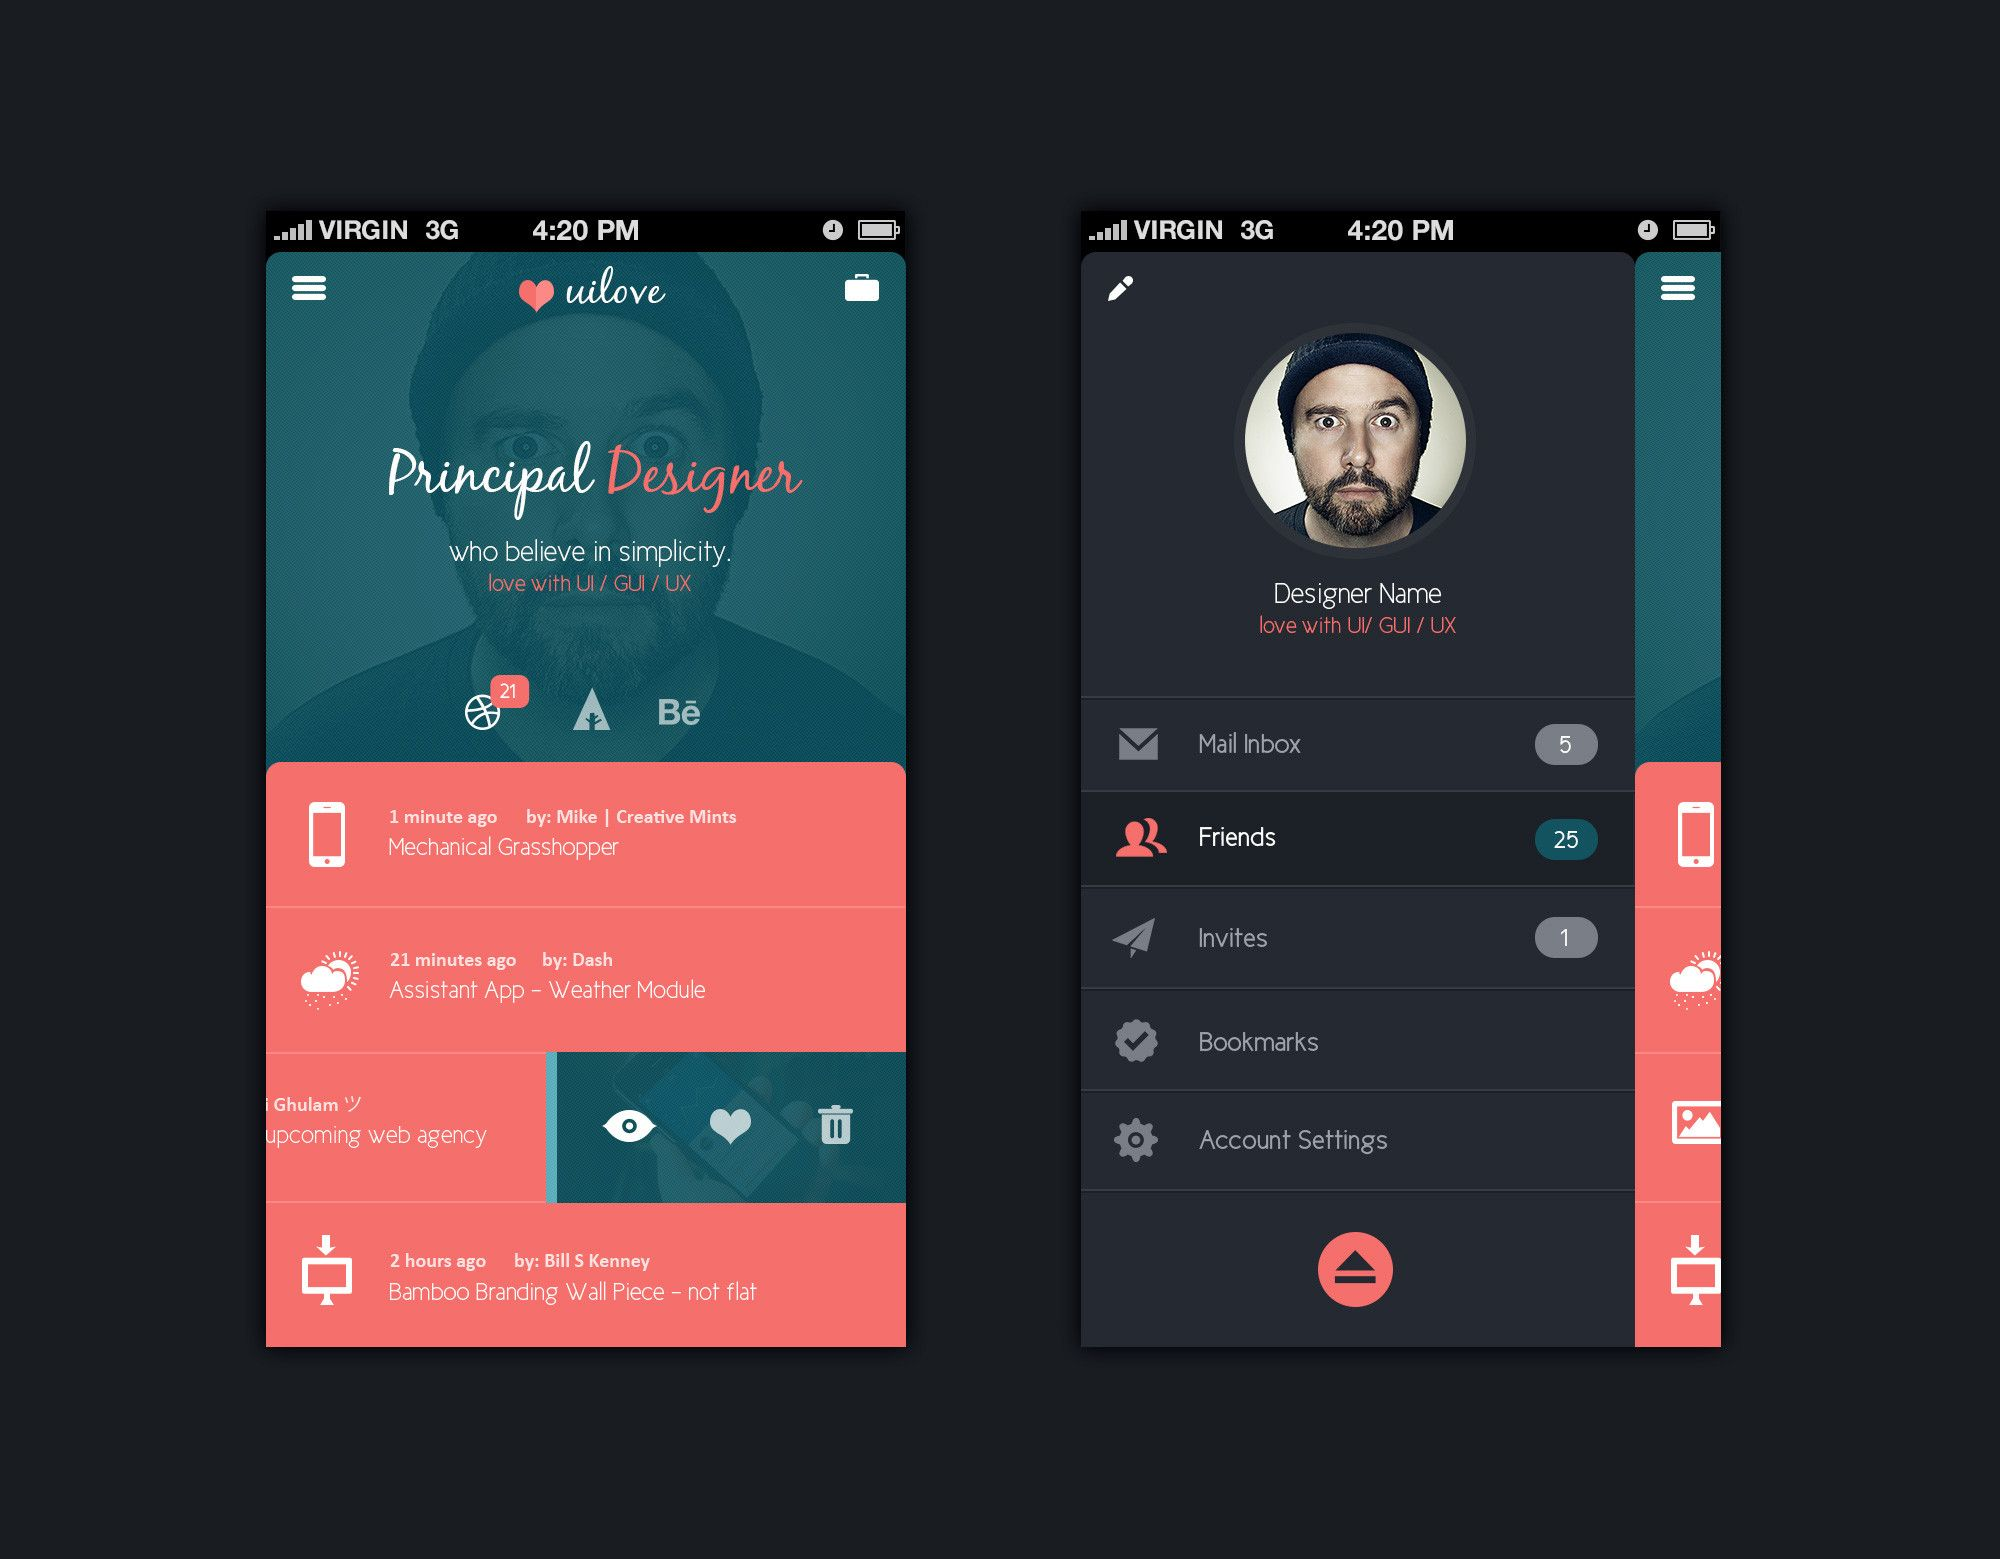 Mobile App Design Template Psd Templates Gfxnerds Mobile App Design Templates Mobile App Design Mobile App Inspiration